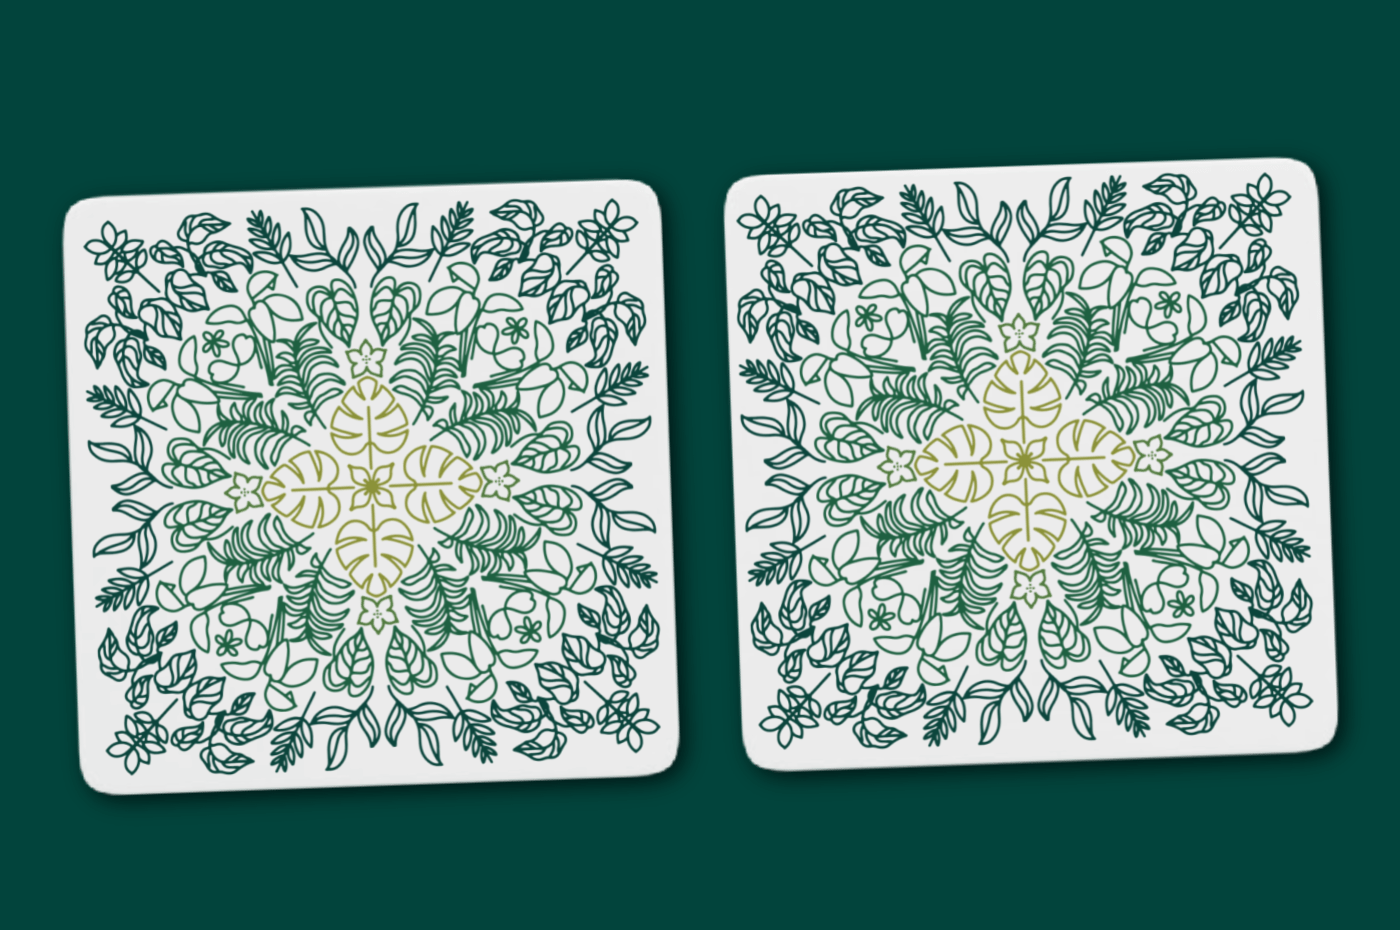 square coasters with plant designs on a green background